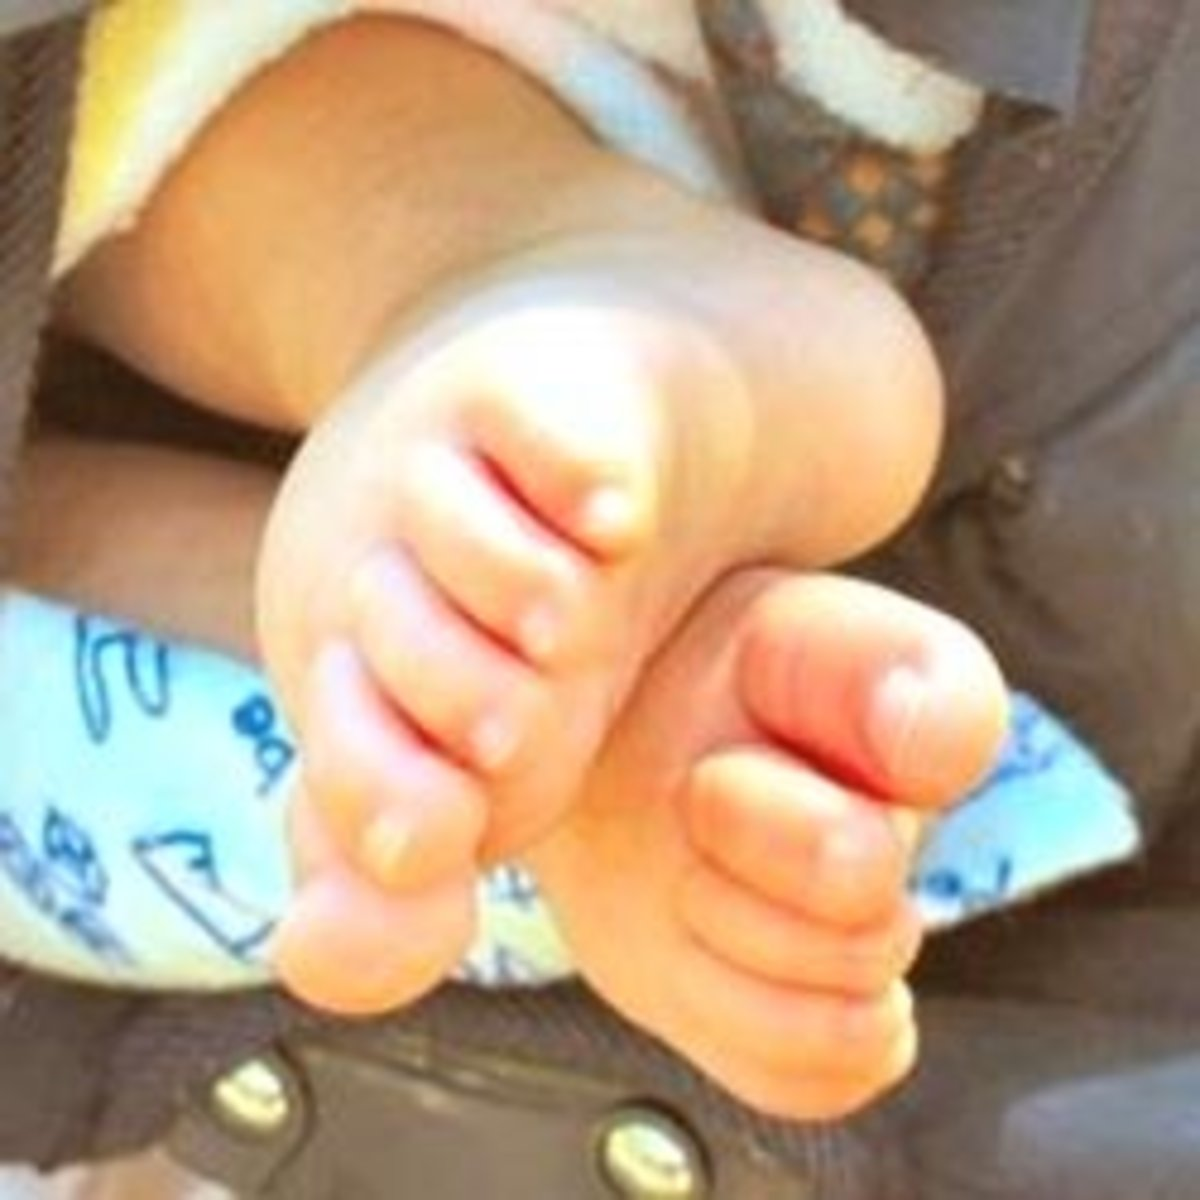 Feet of a baby in a car-seat